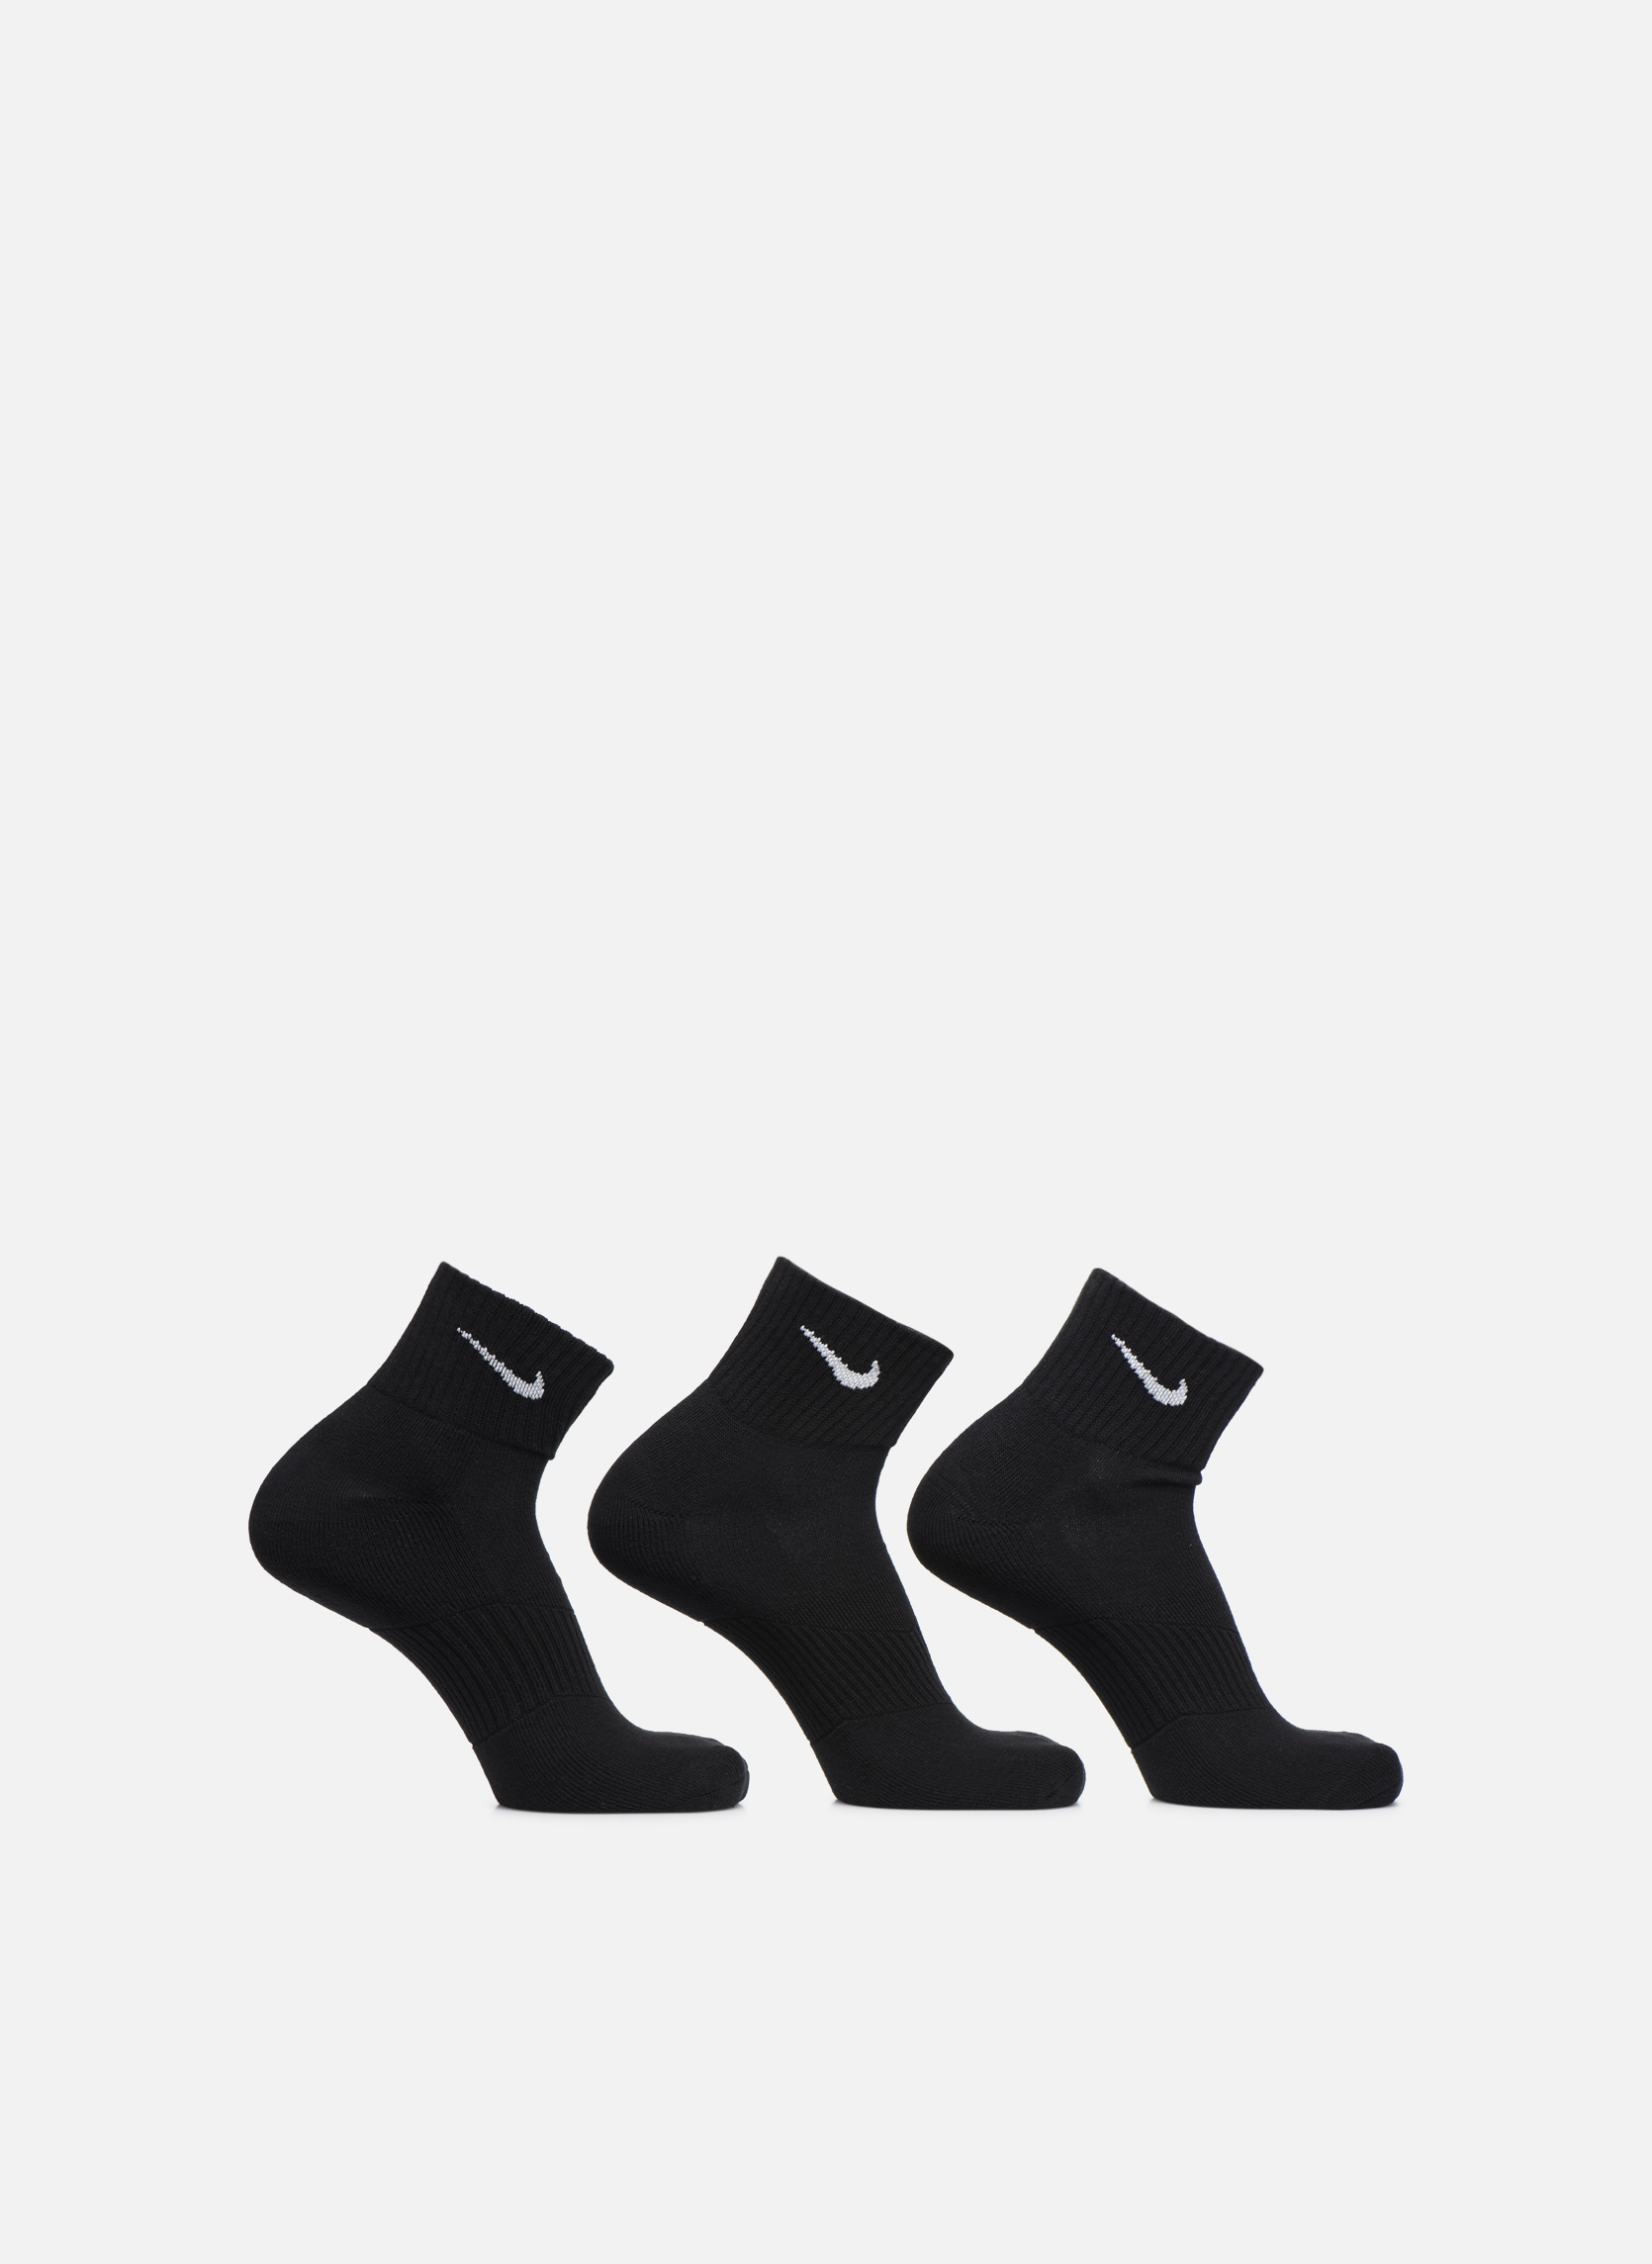 Socks & tights Accessories (3 pack) Low Nike Cushion socks